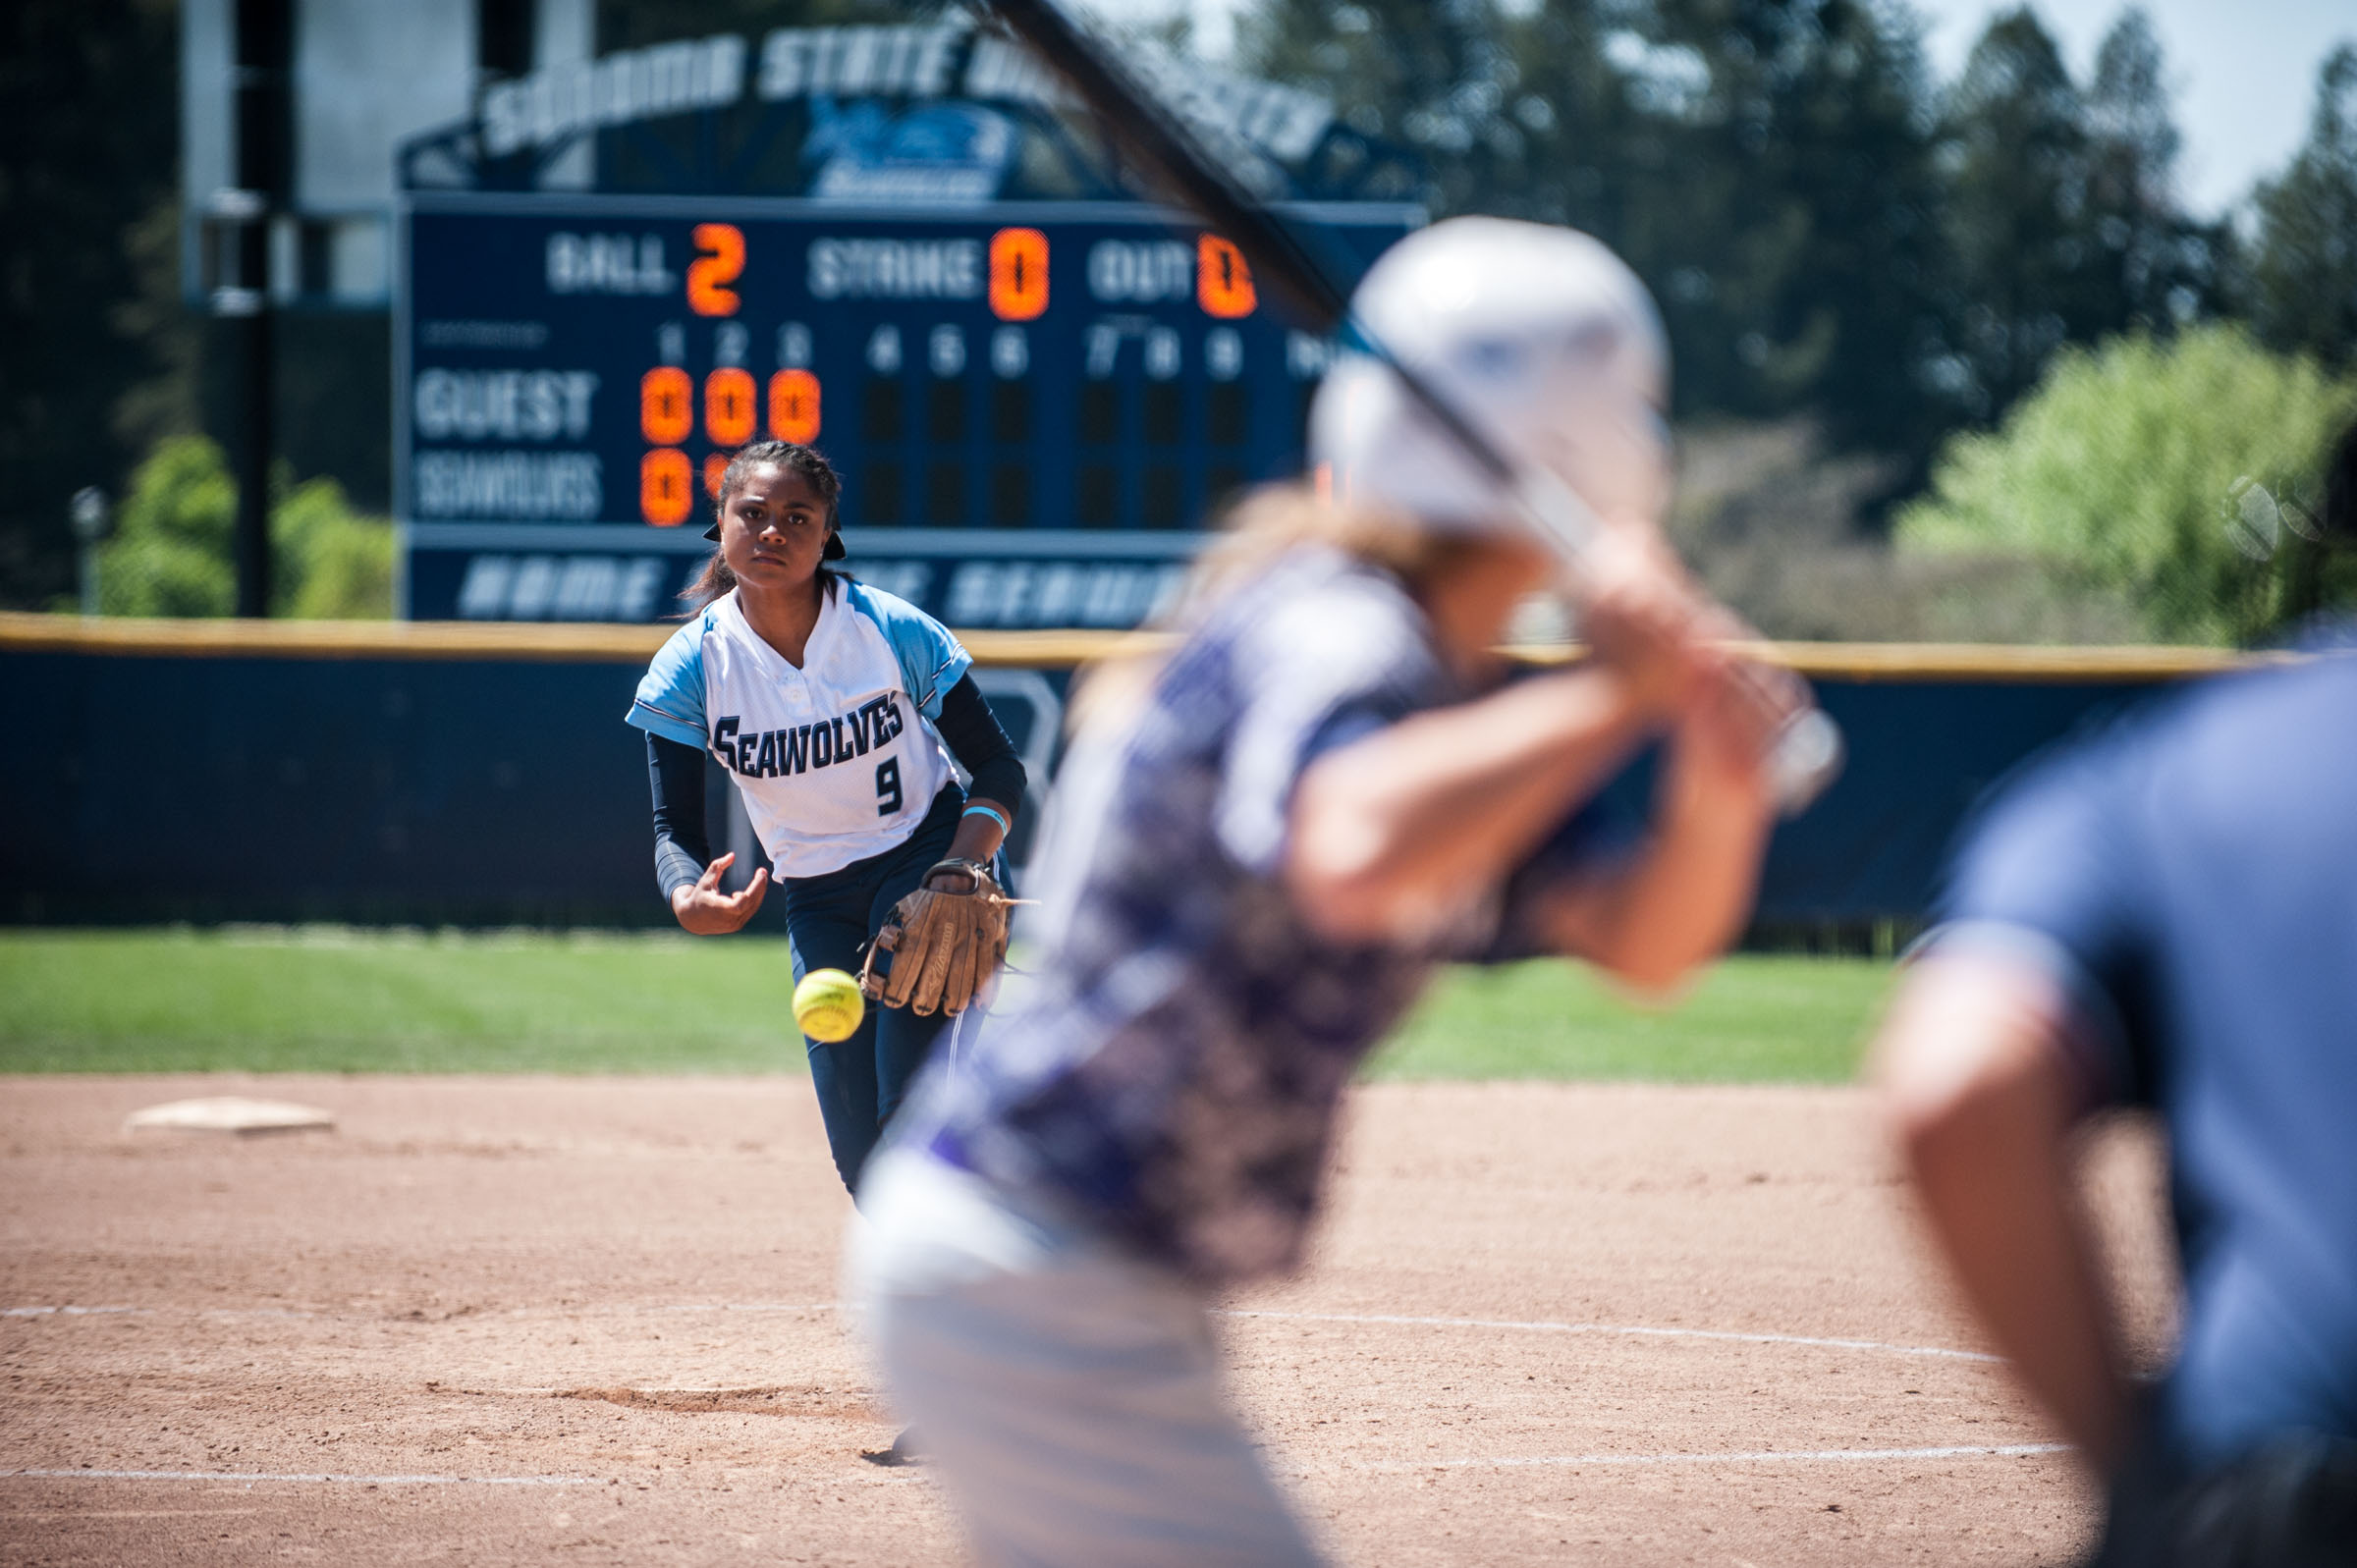 STAR // Connor Gibson   The softball team showed great offense, defense and pitching in their final games at home by scoring 25 runs to just one run over two games.